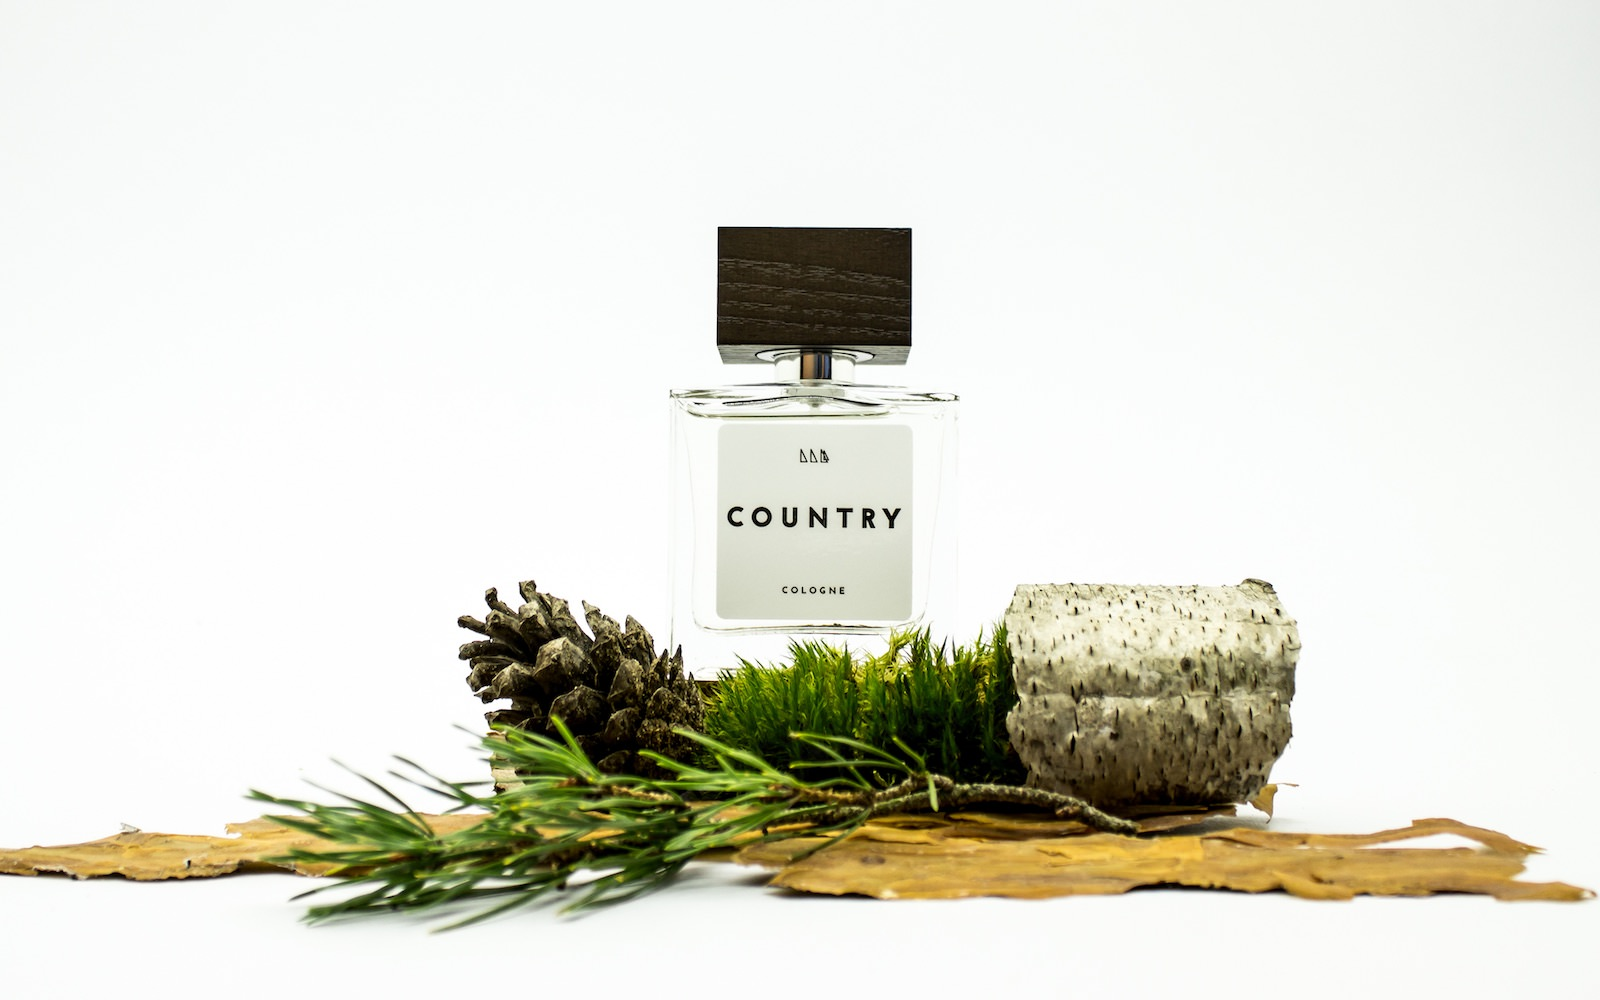 Country: a small batch cologne from Thomas Clipper